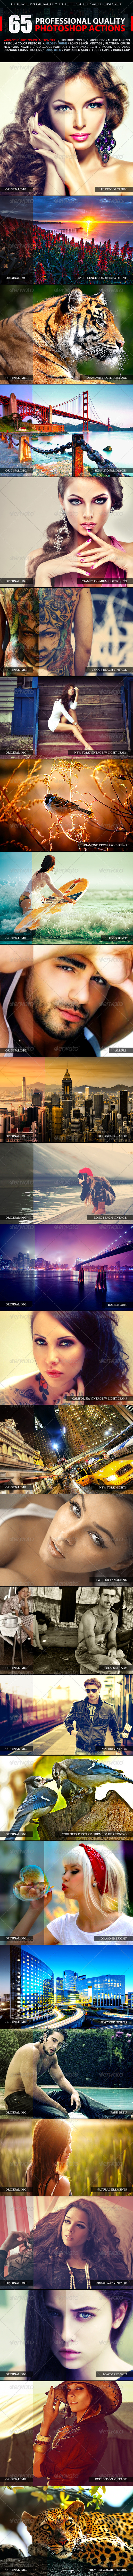 GraphicRiver 65 Professional Quality Actions 7021417